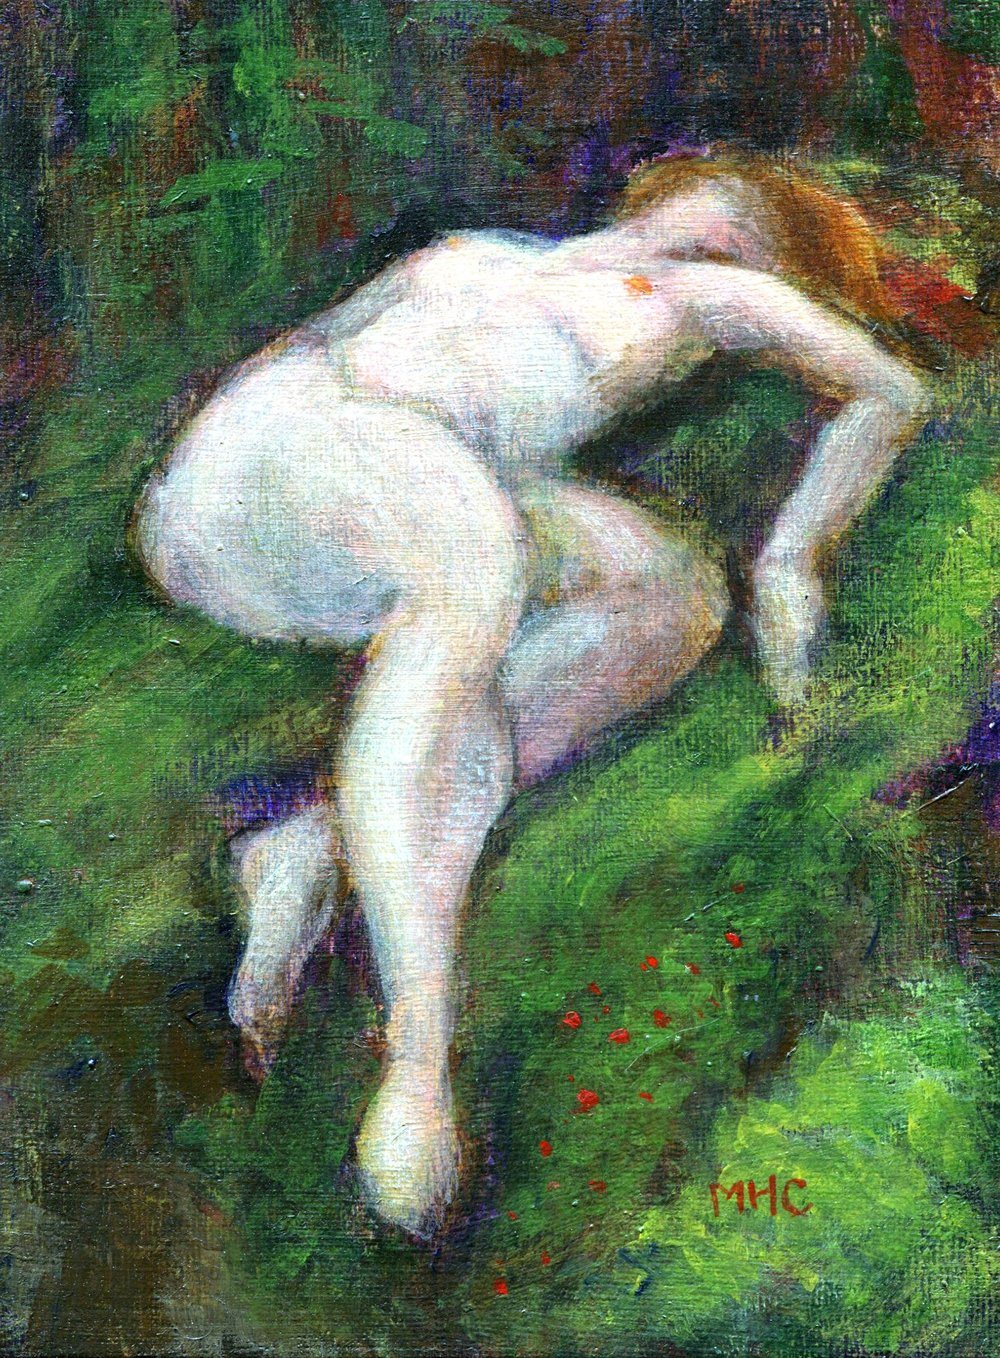 58C MORAY COMRIE, DREAMING DRYAD, OIL ON CANVAS BOARD